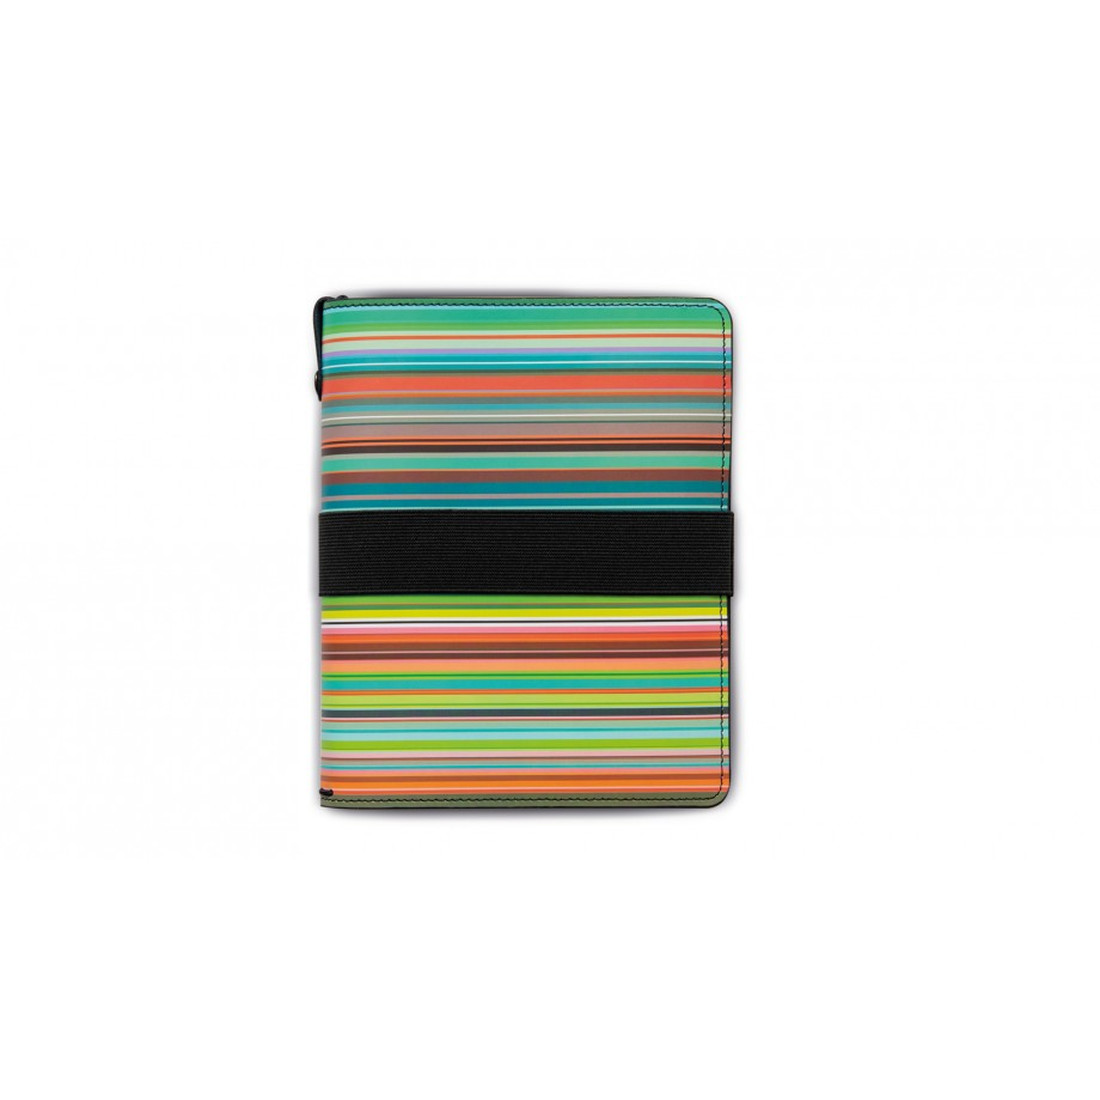 Reisetagebuch TripBook Micro-Stripes by REMEMBER